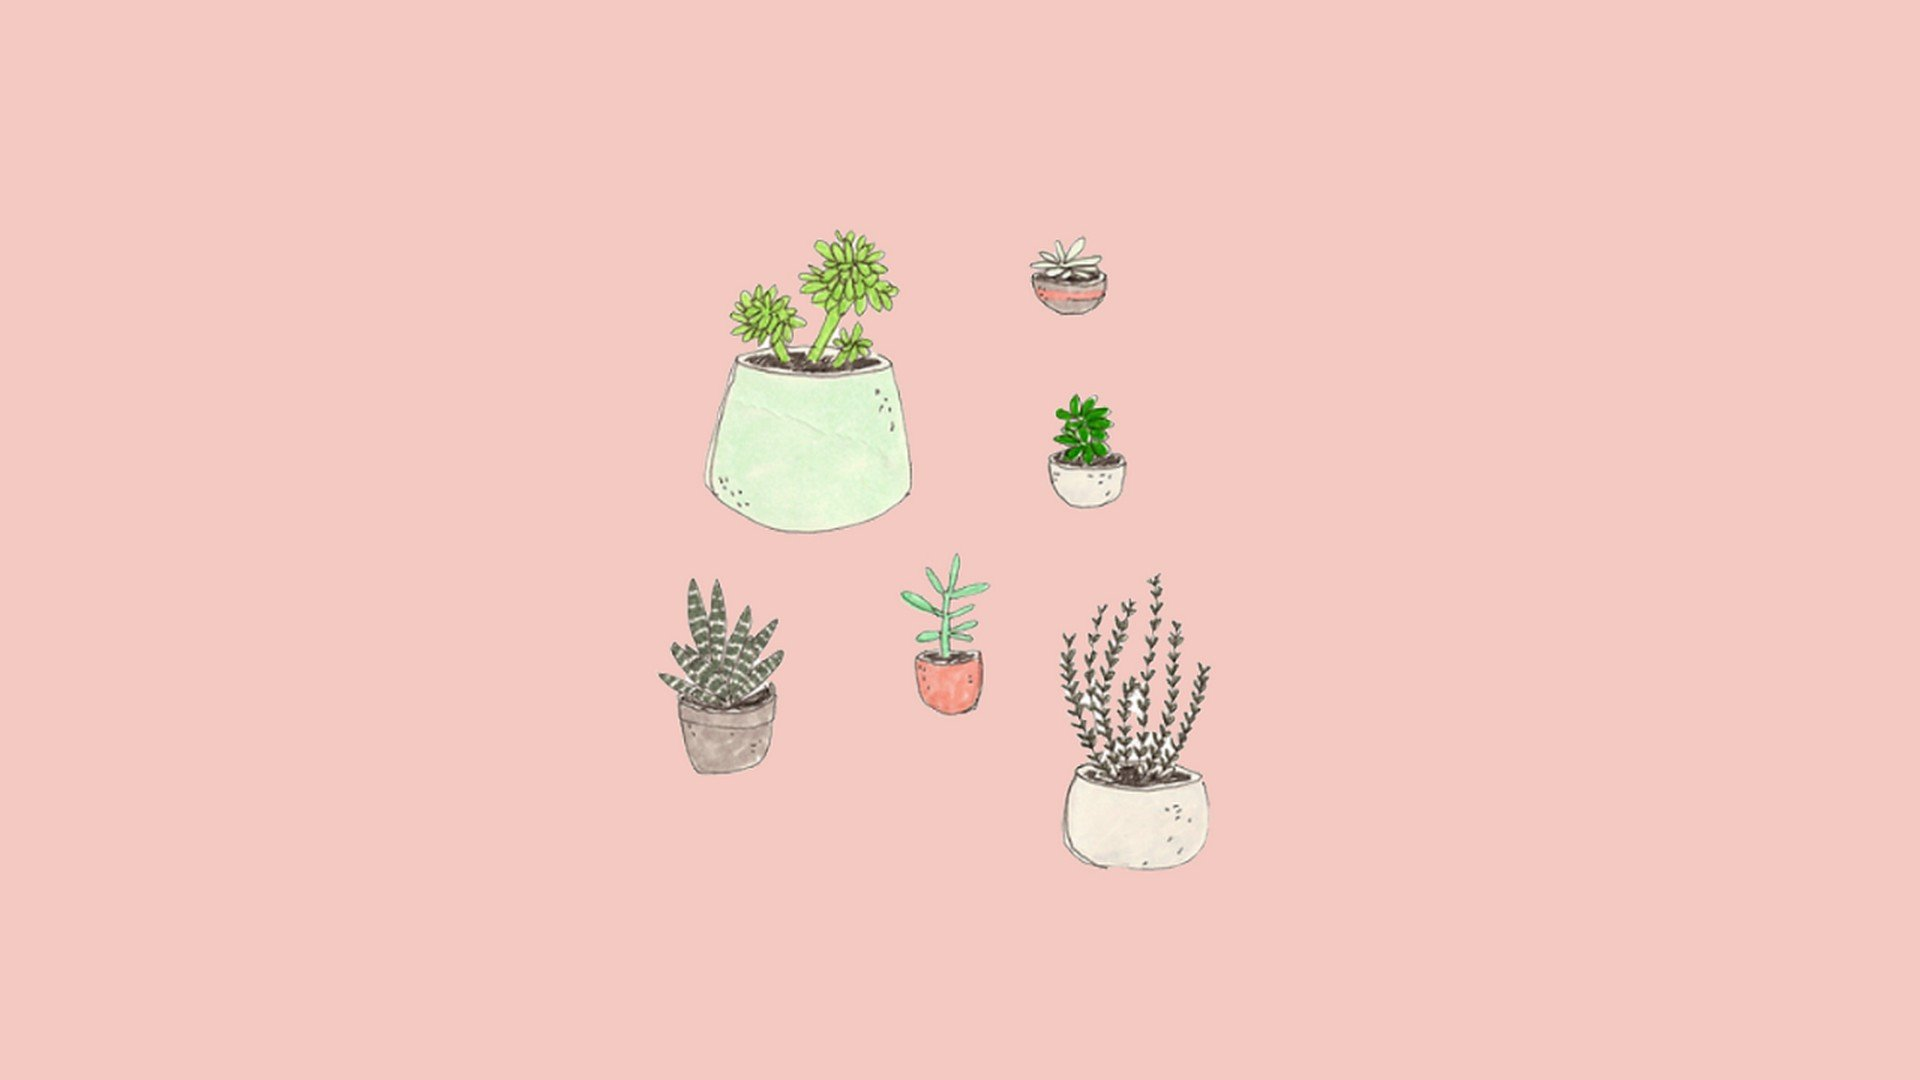 HD Aesthetic Backgrounds 2020 Cute Wallpapers 1920x1080